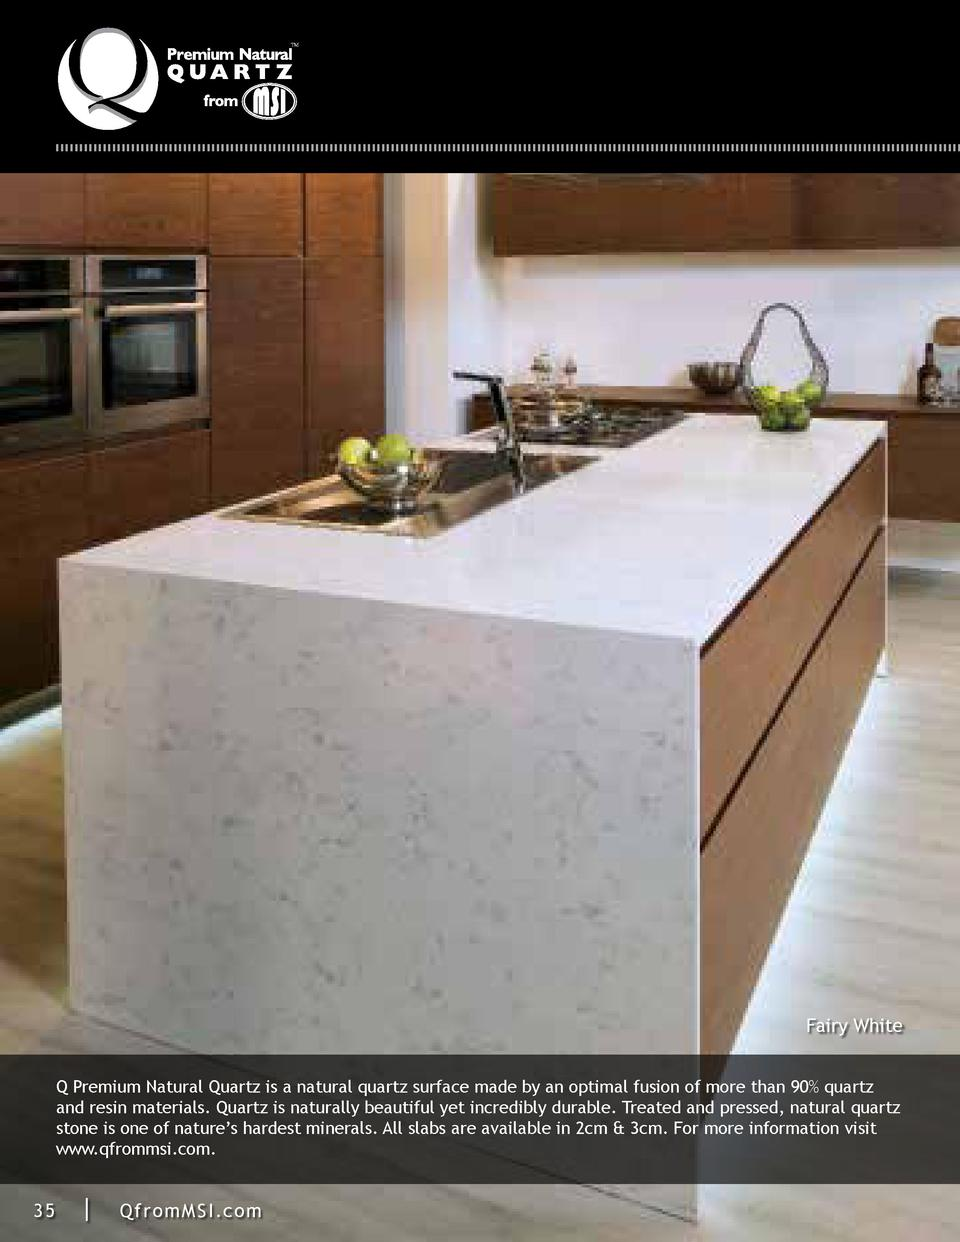 TM  FULL PAGE PHOTO  Fairy White Q Premium Natural Quartz is a natural quartz surface made by an optimal fusion of more th...